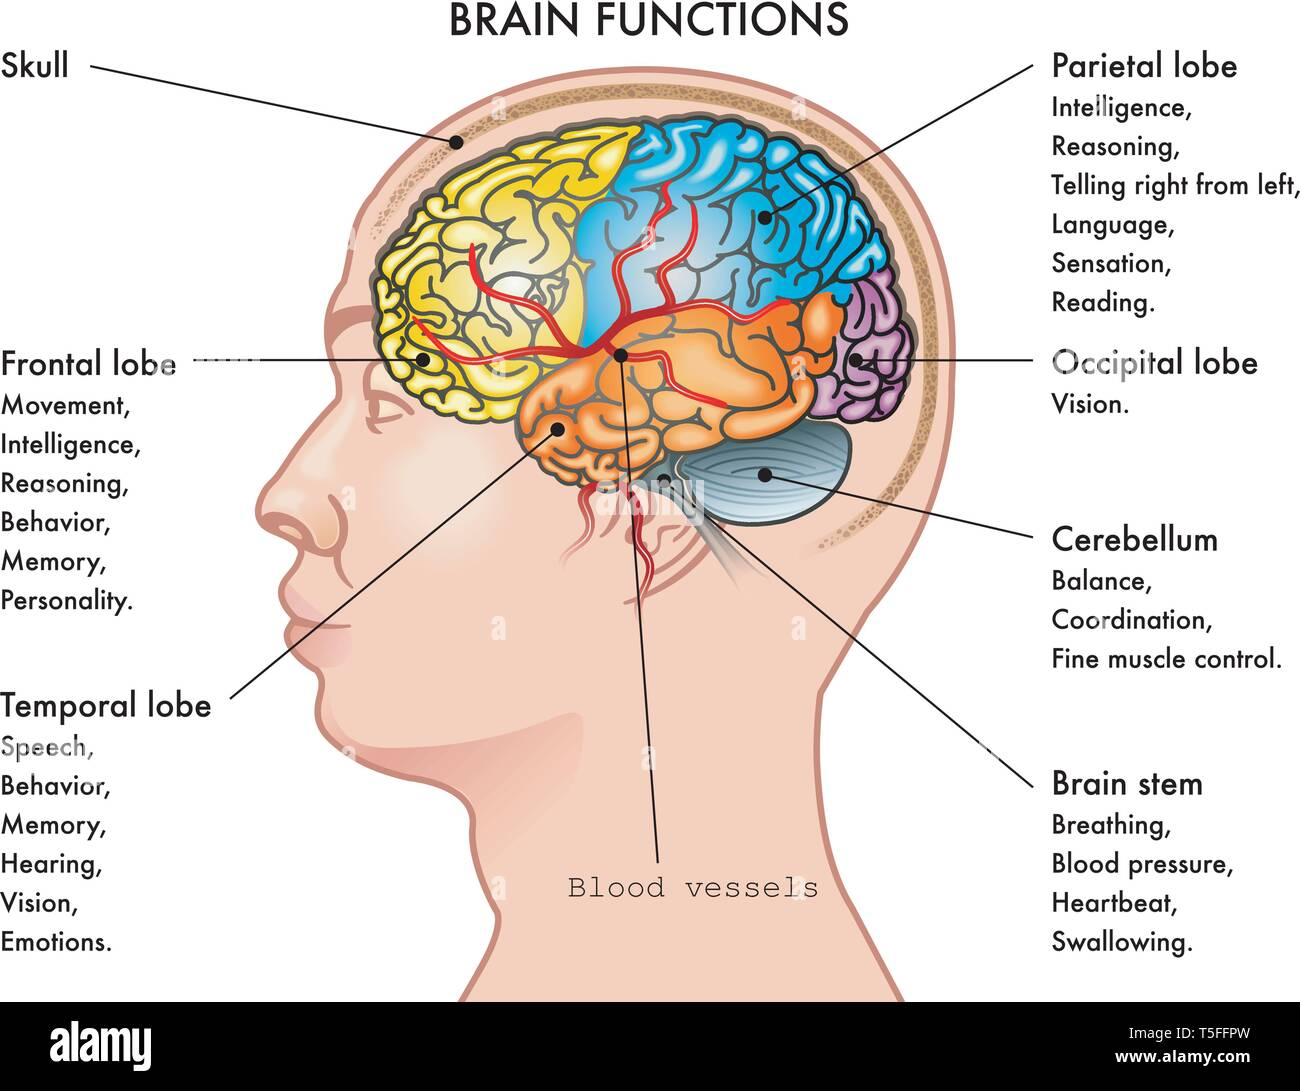 Chart vector illustration of a human head in profile showing the functions of the brain, isolated on a white background. - Stock Image